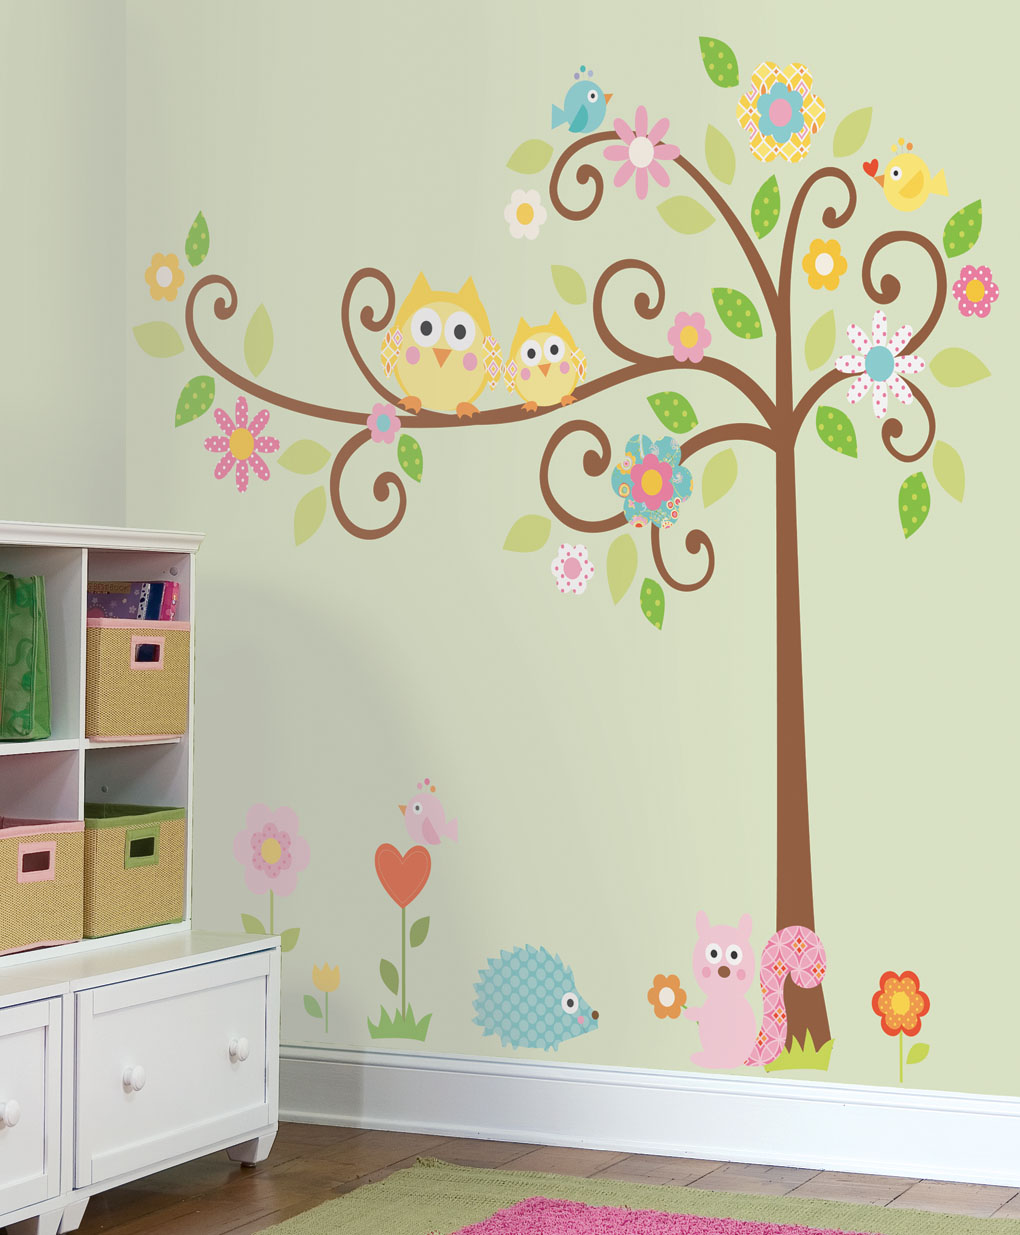 Wall Decals Kids Art Wall Decor: kids room wall painting design